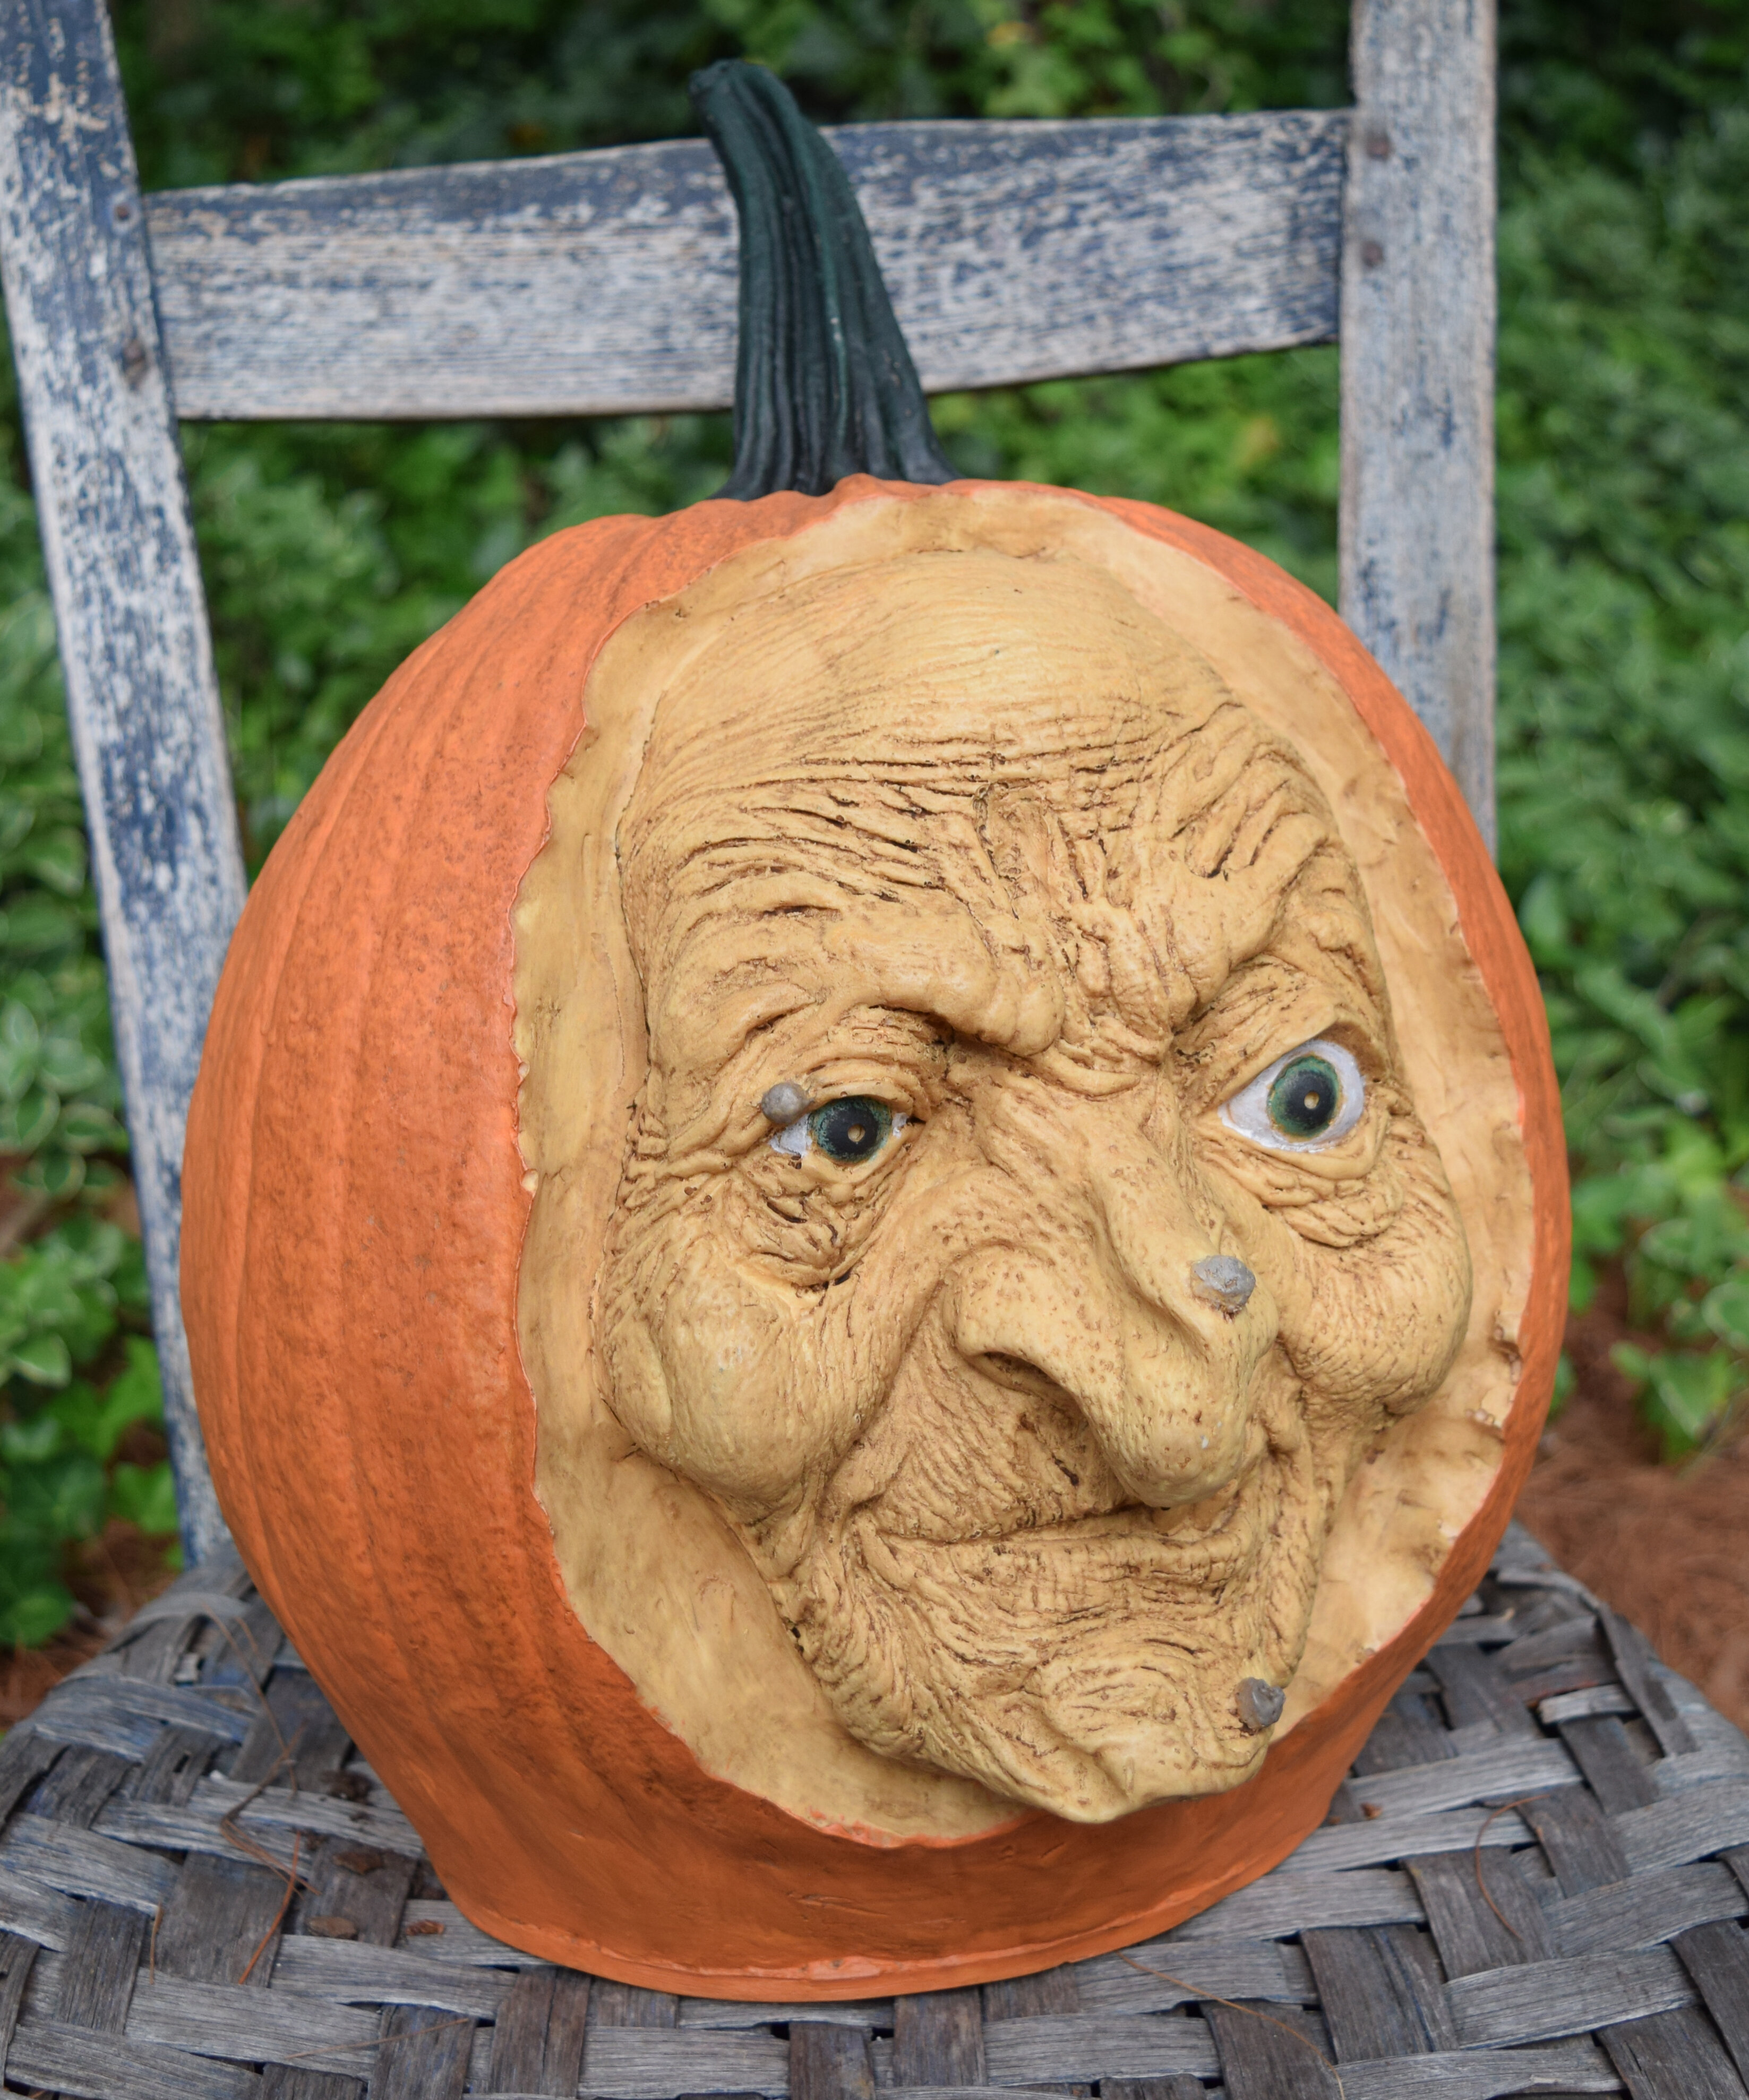 The Holiday Aisle Carved Witch Pumpkin Wayfair